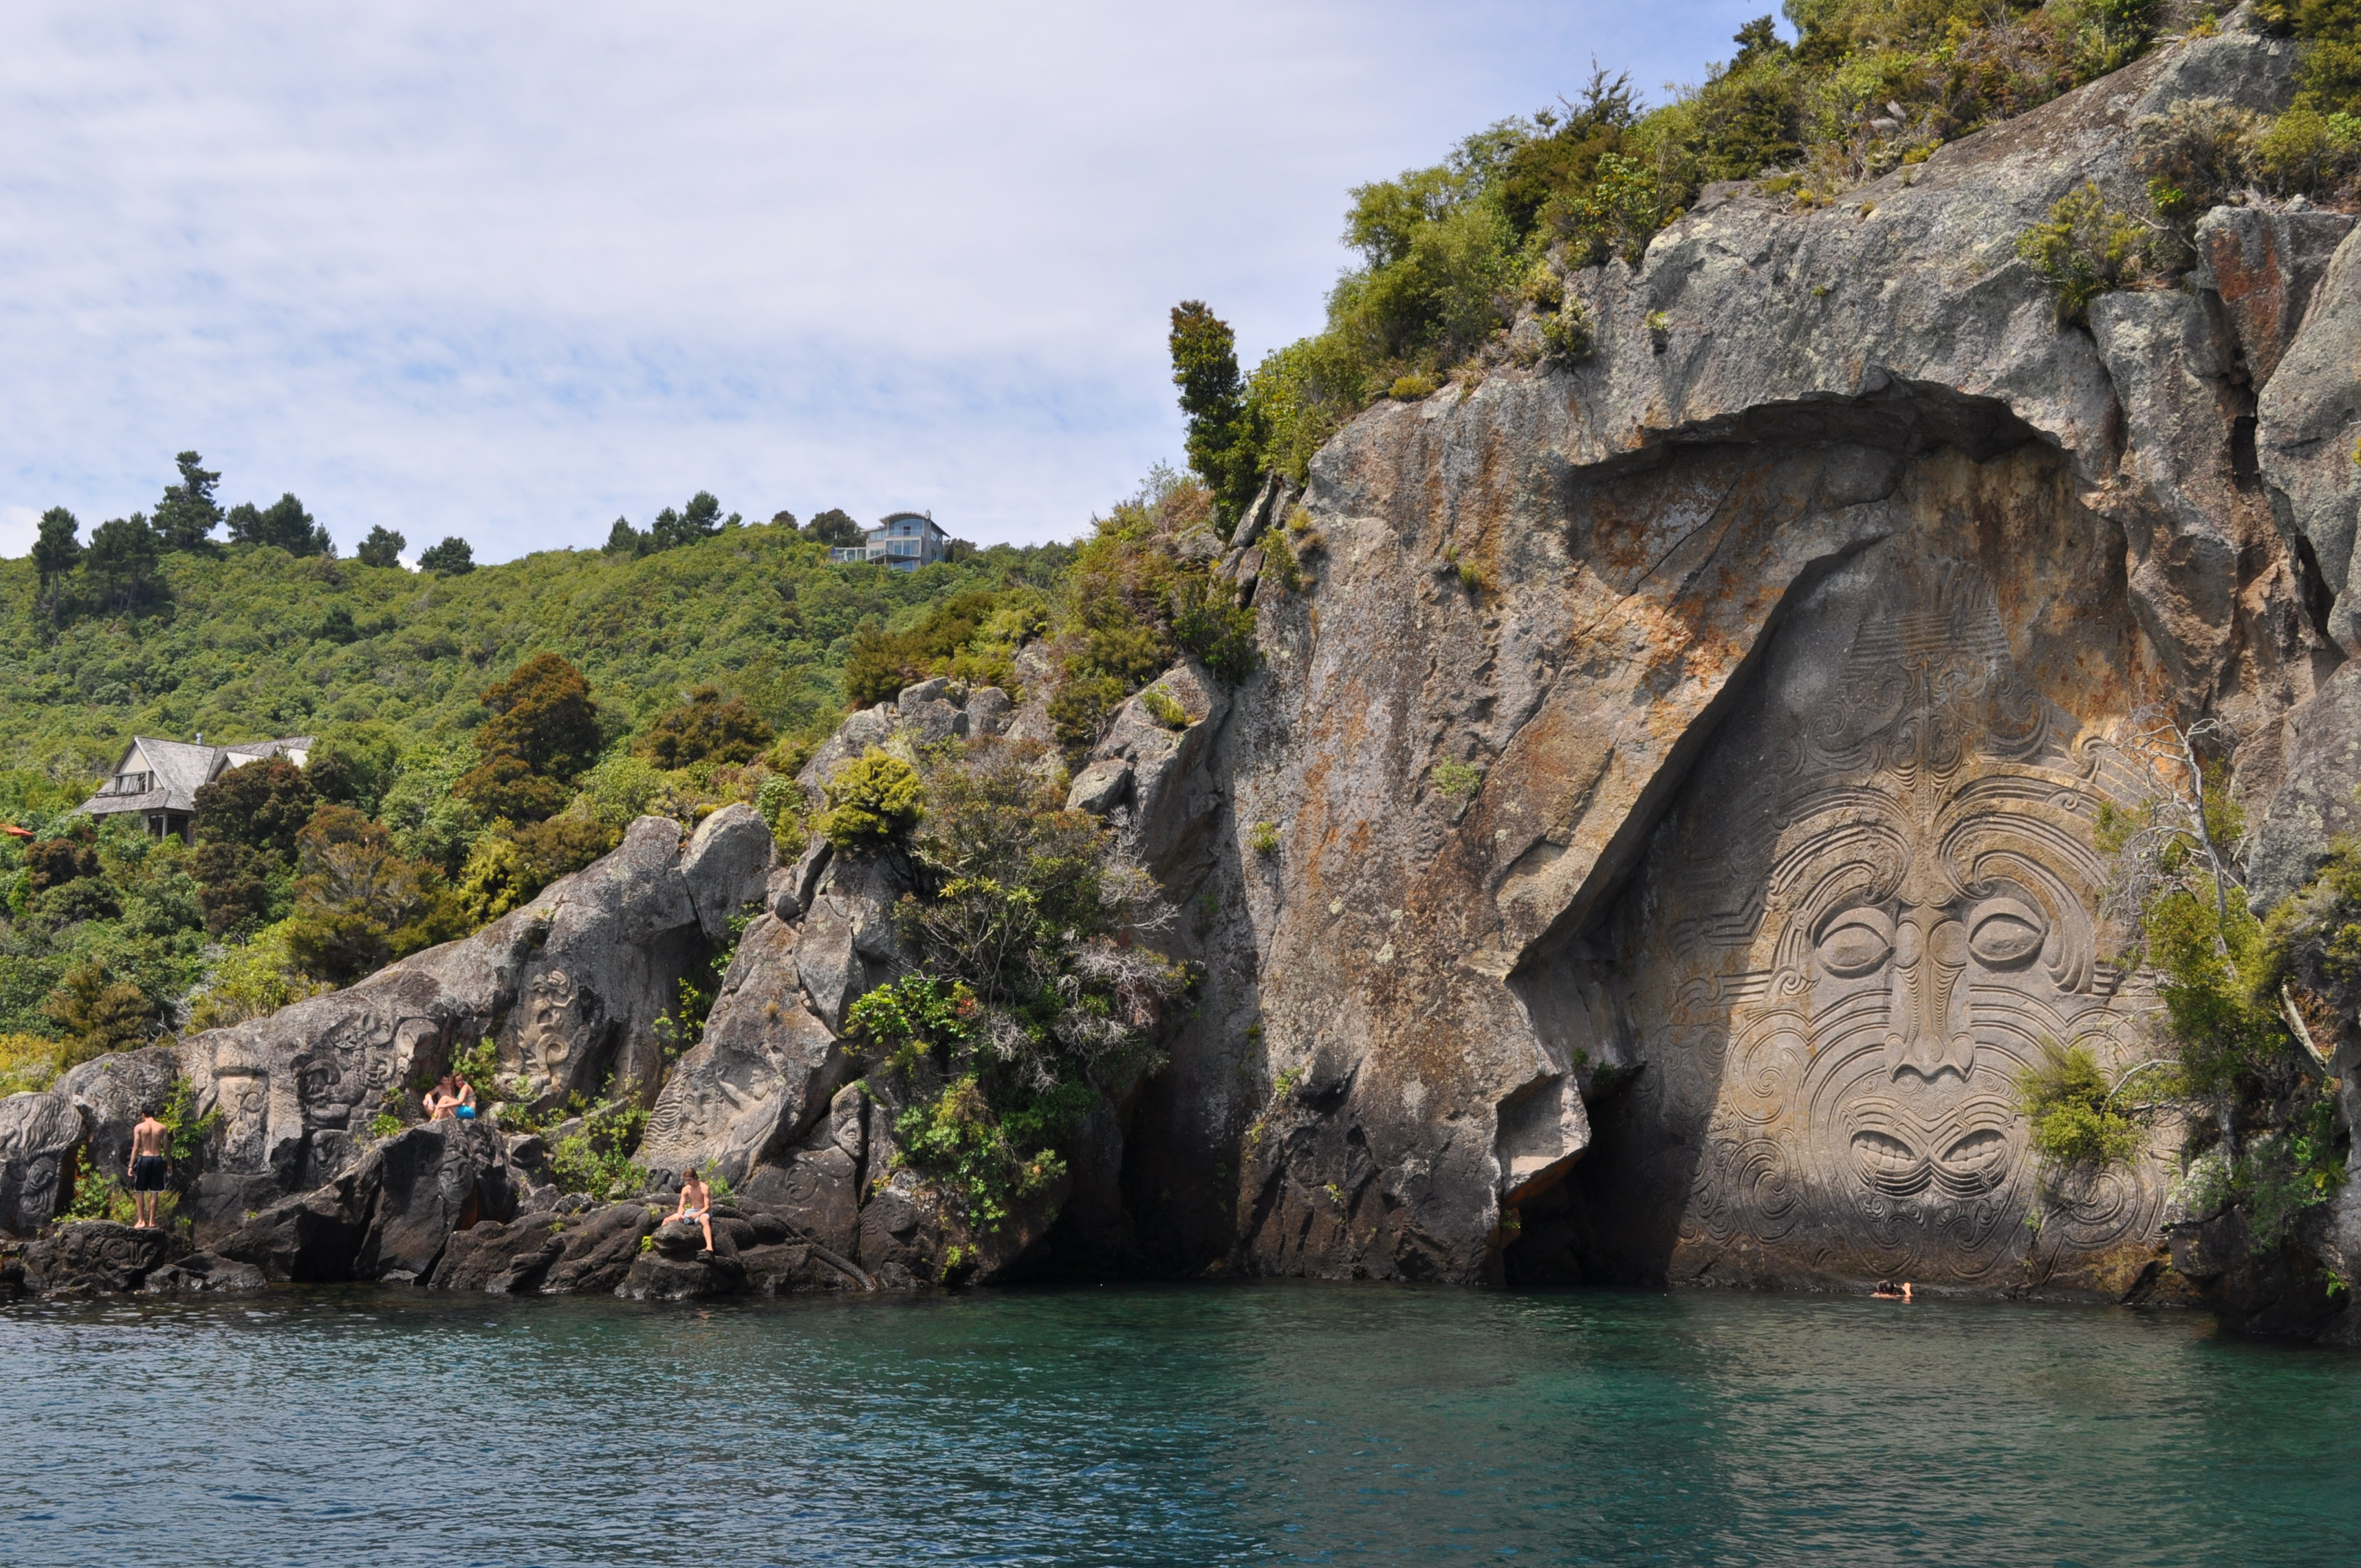 The maori rock carvings life on our backs